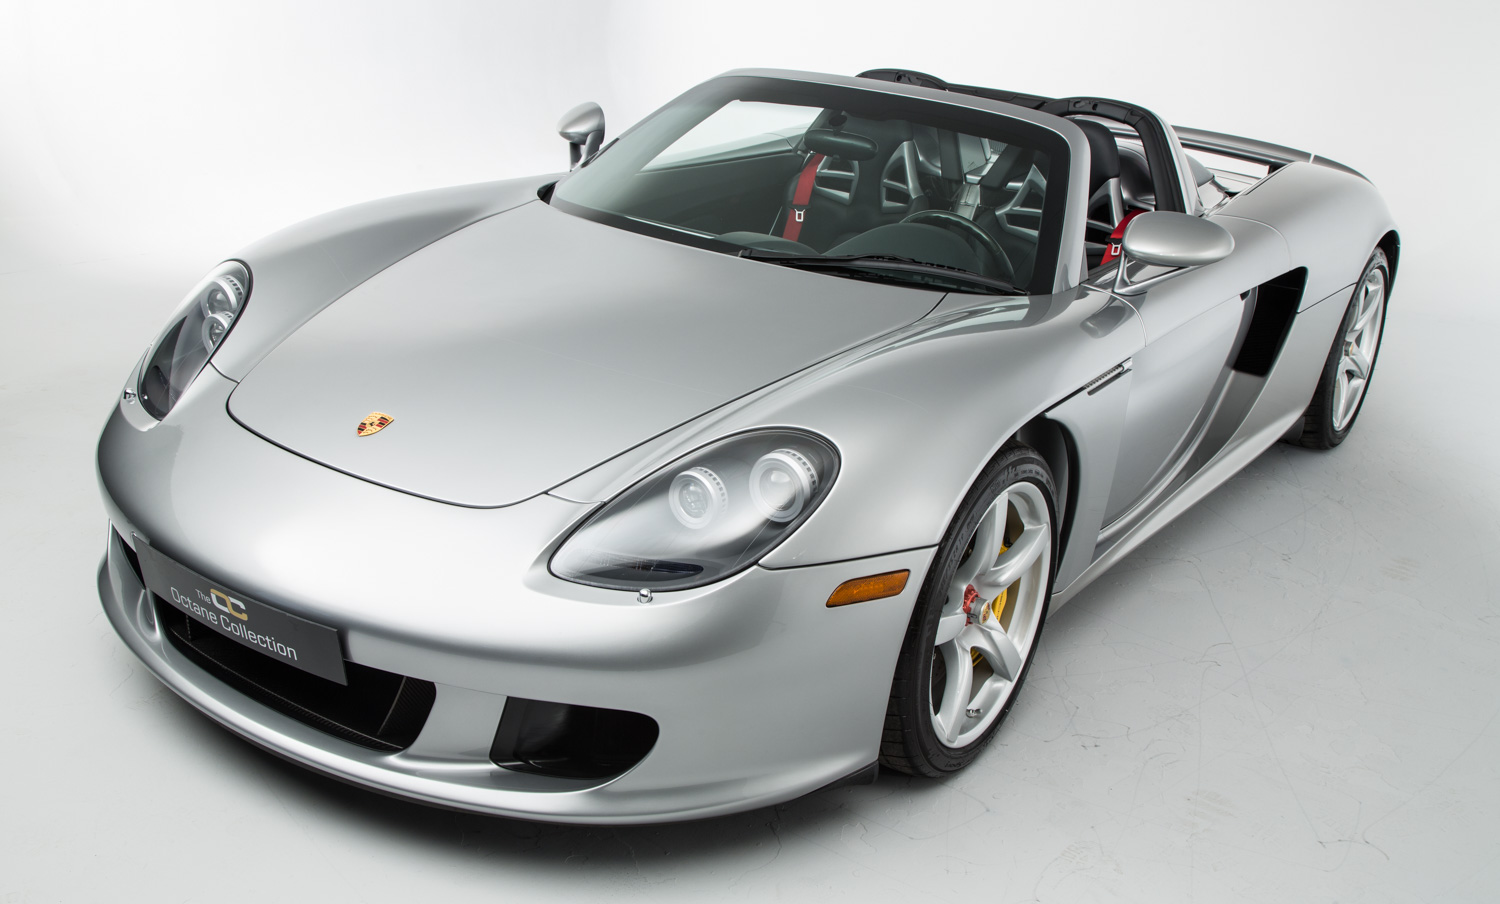 Porsche Carrera gt For Sale Porsche Carrera gt For Sale